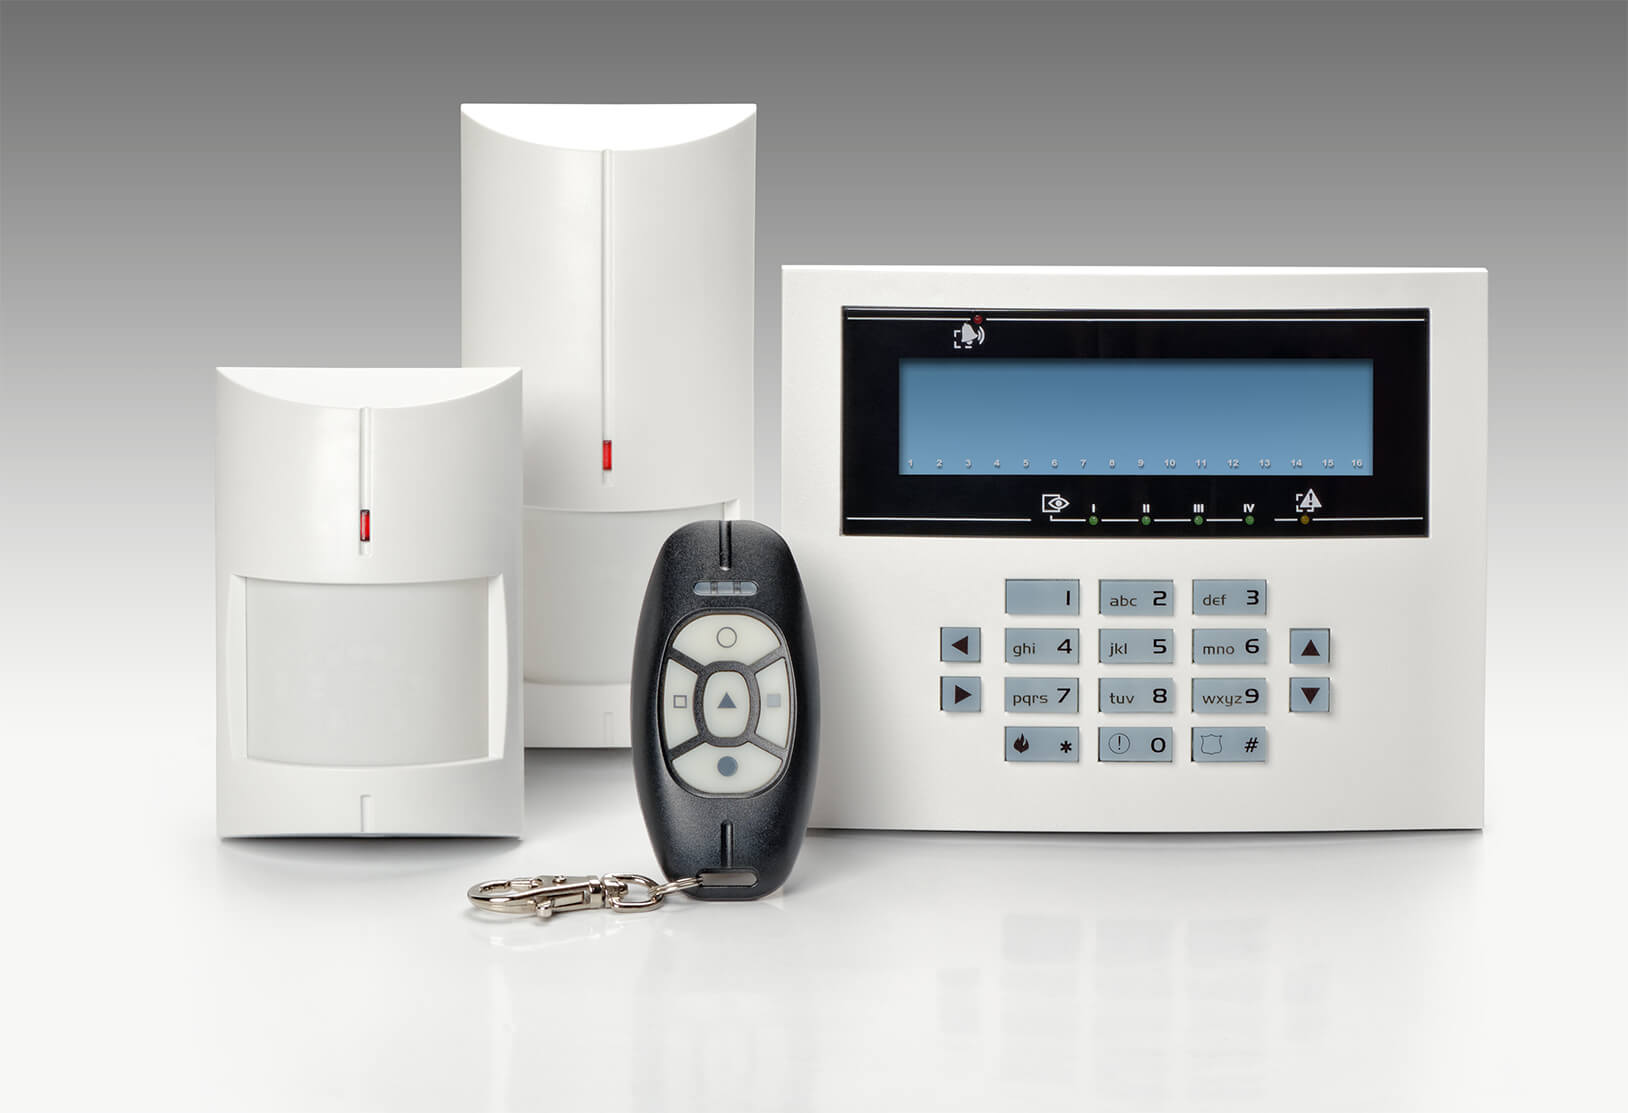 Commercial Burglar Alarms For Business in Lambeth SE24  - Local Lambeth SE24 burglar alarm company.Call 02078872244 - Dedicated to Safety & Security. Companies, shops and homes ..